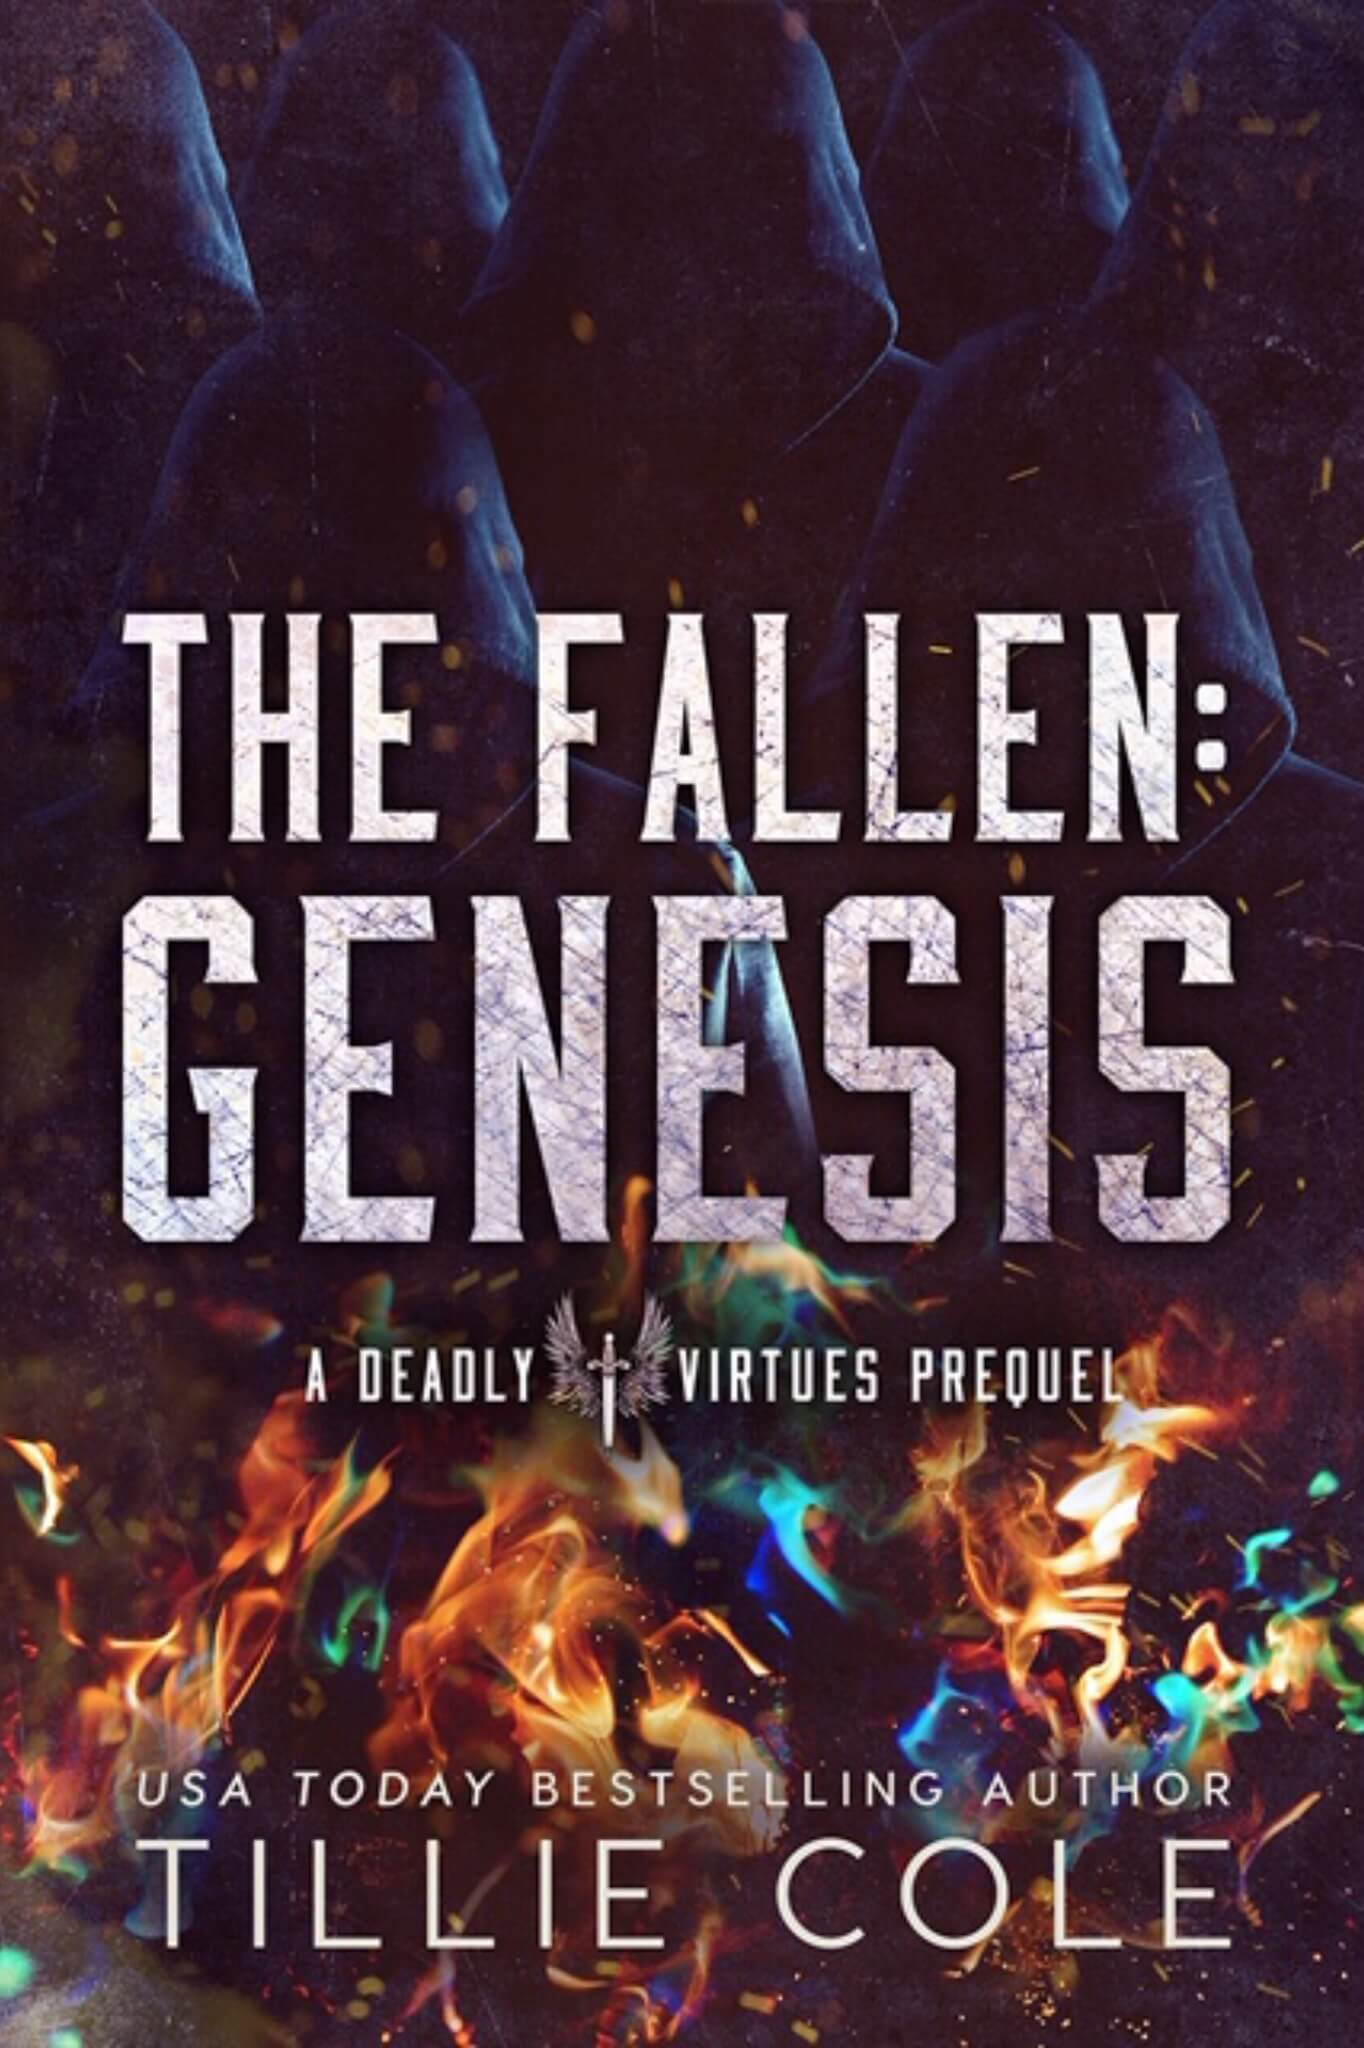 Cover Reveal * The Fallen: Genesis (a Deadly Virtues prequel) by Tillie Cole * Coming May 29th